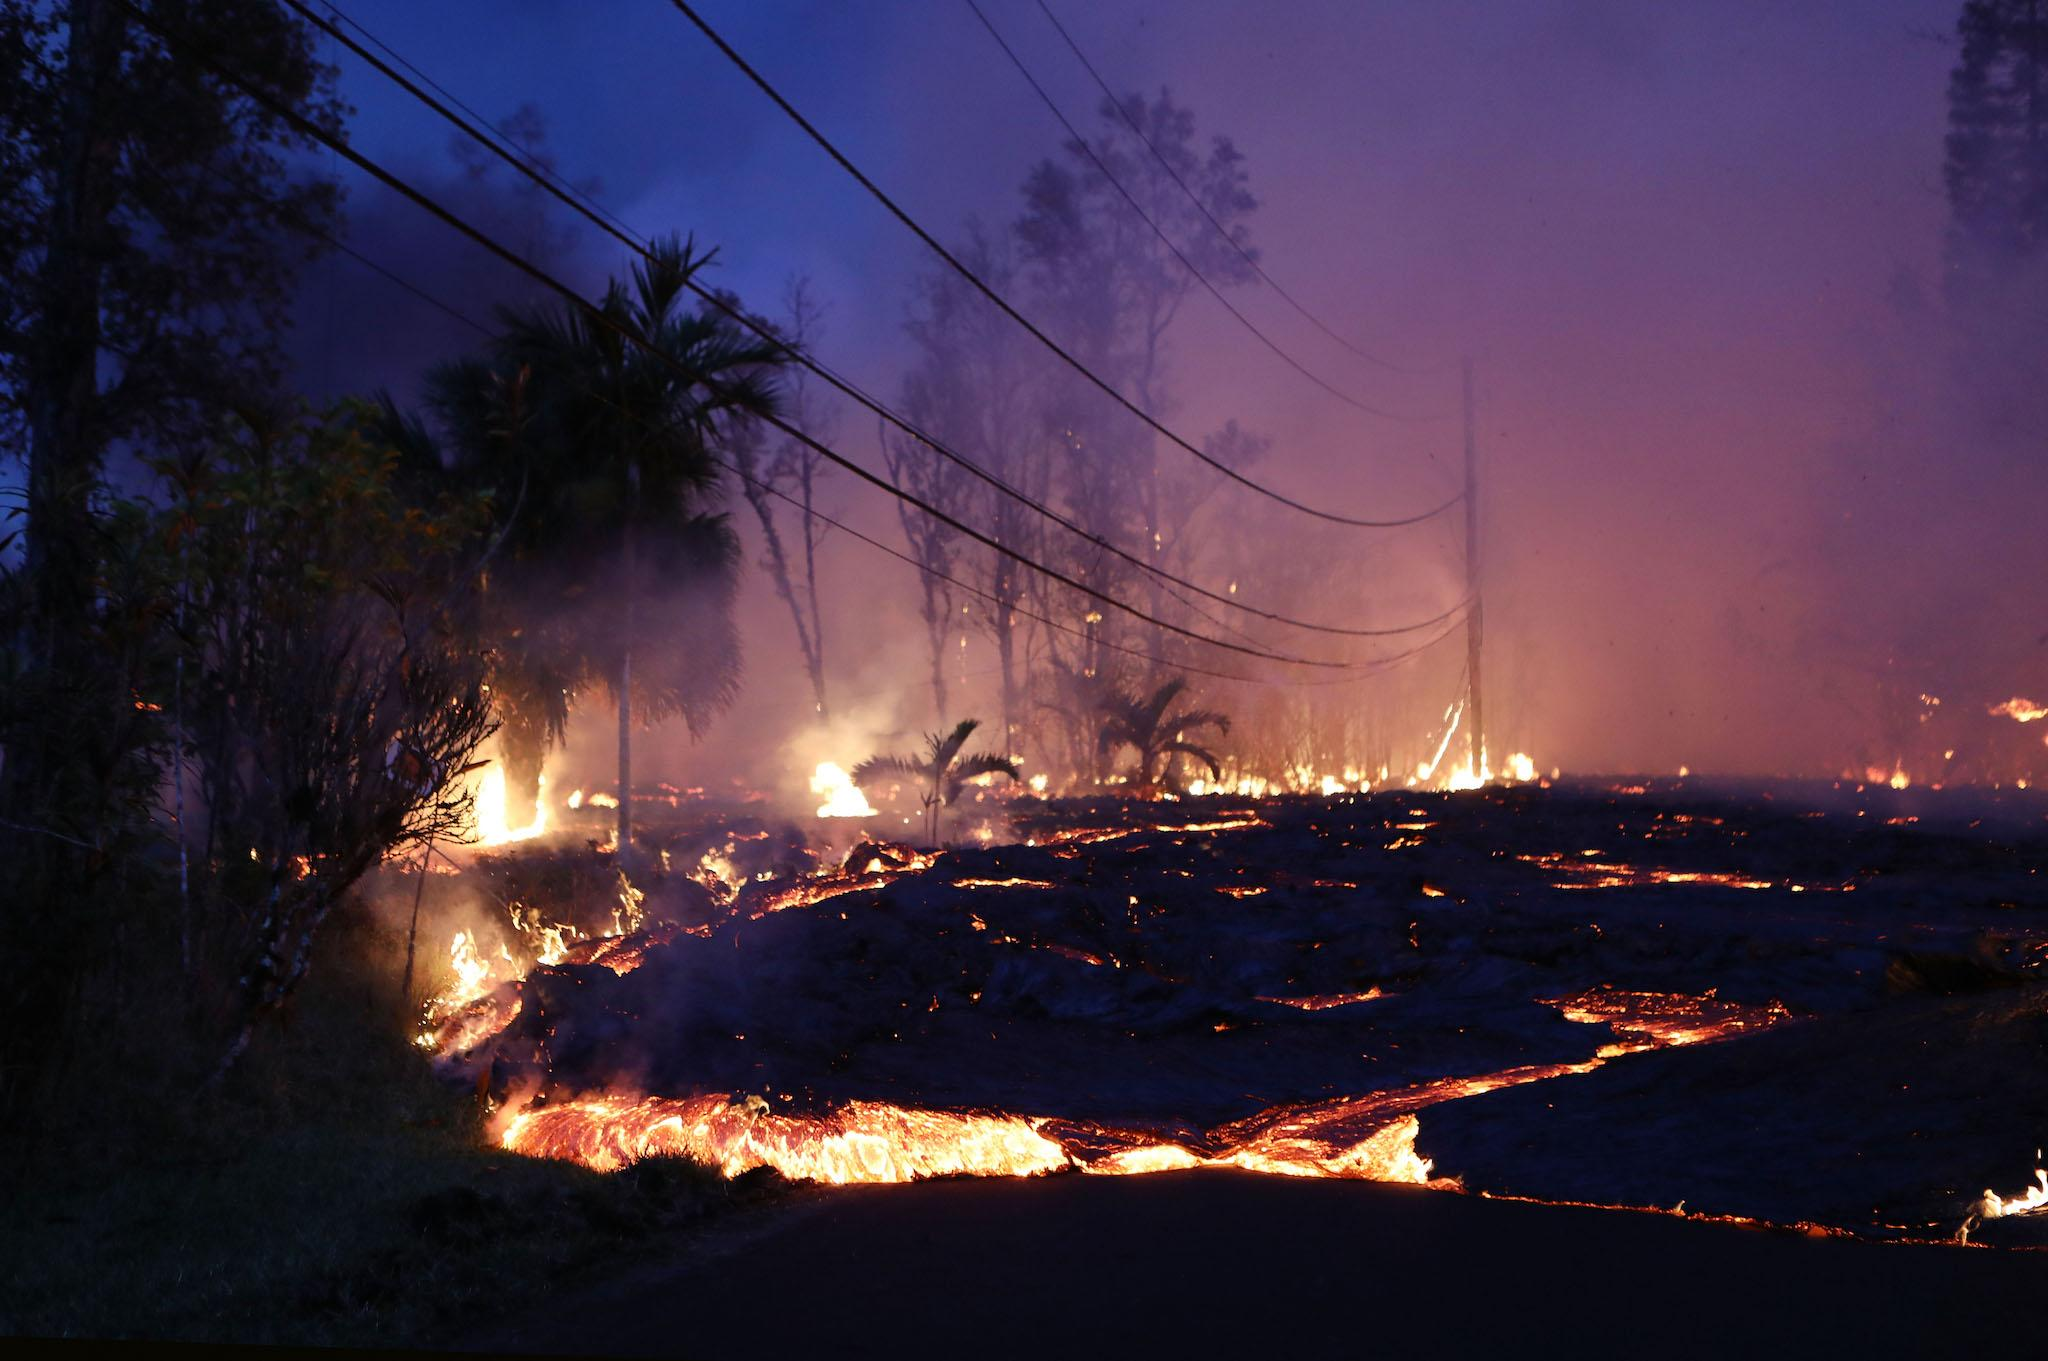 kilauea sex personals Emergency evacuations have been ordered in hawaii after kilauea volcano began to erupt - causing a river of molten lava to flow from the ground.